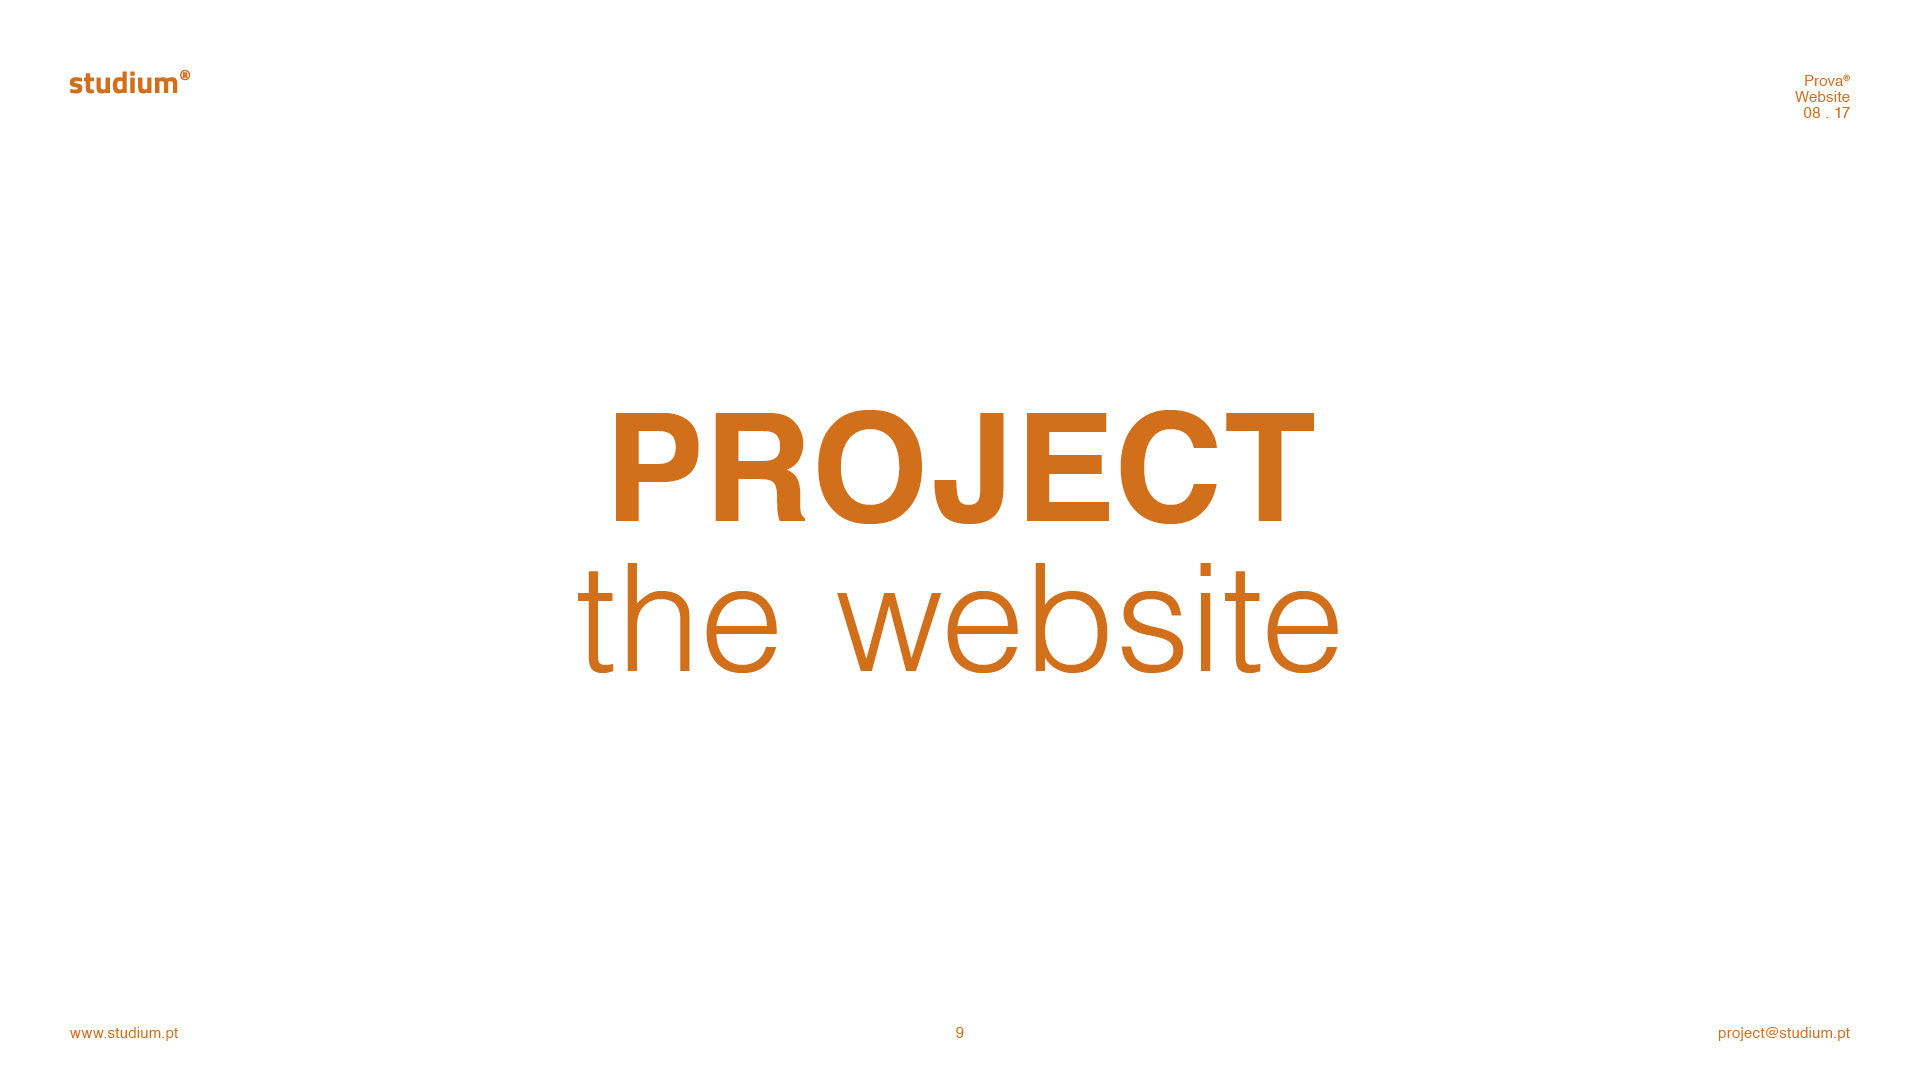 WEB20170000-Prova-Website-Presentation-PU.09